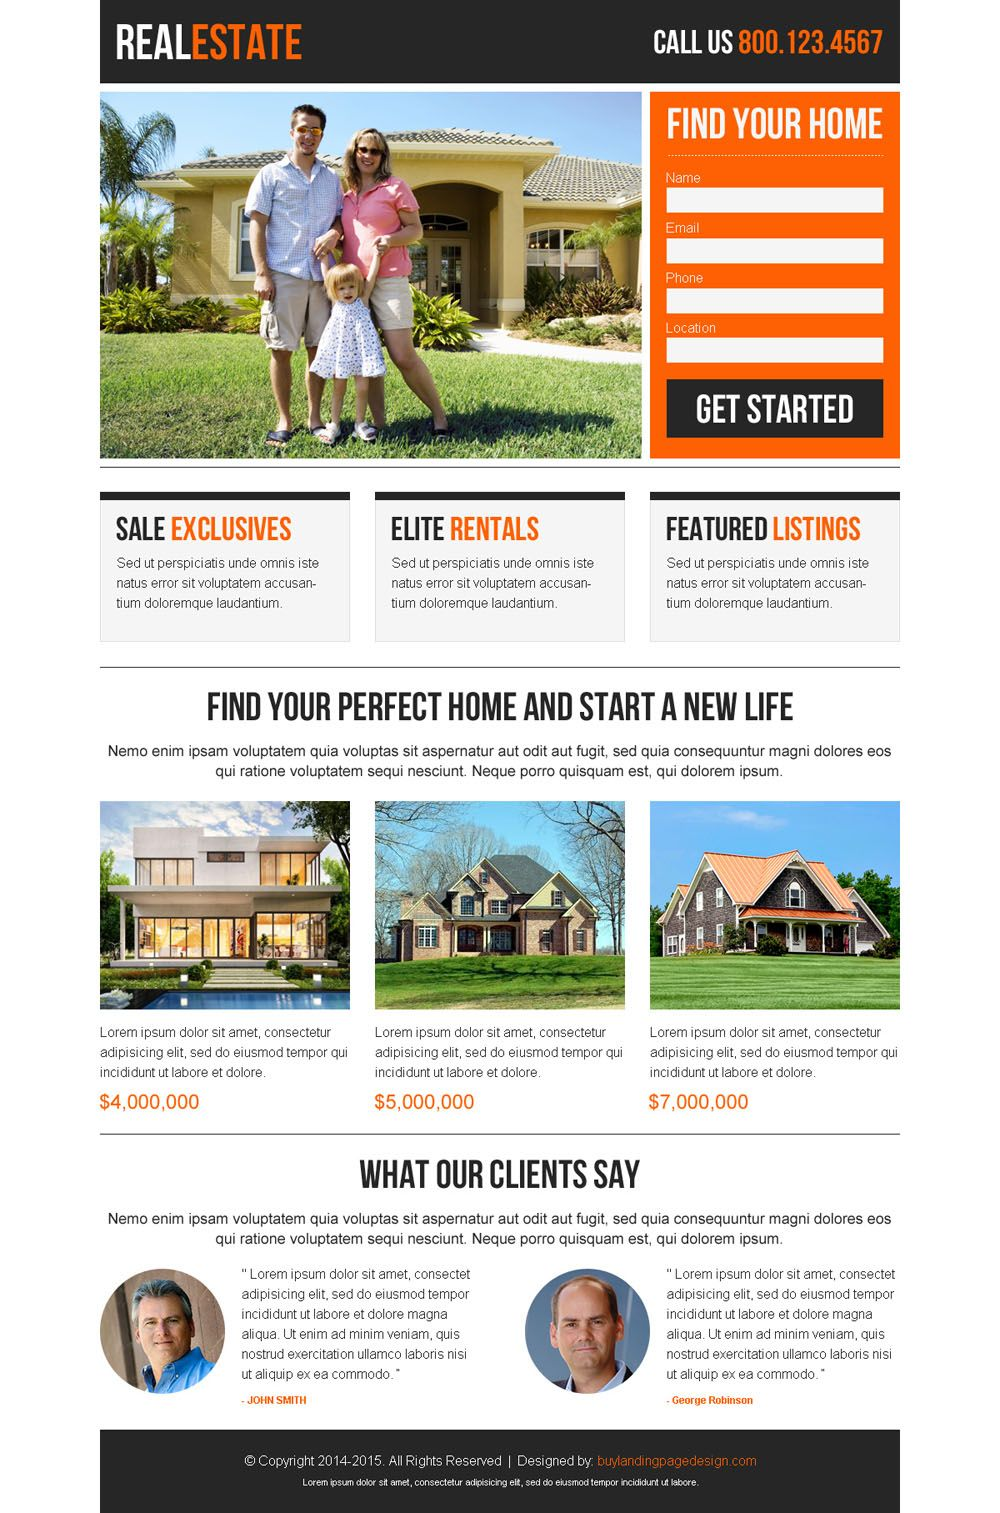 Best Real Estate Clean And Appealing Lead Capture Responsive Landing Page Design Real Estate Landing Pages Real Estate Website Design Real Estate